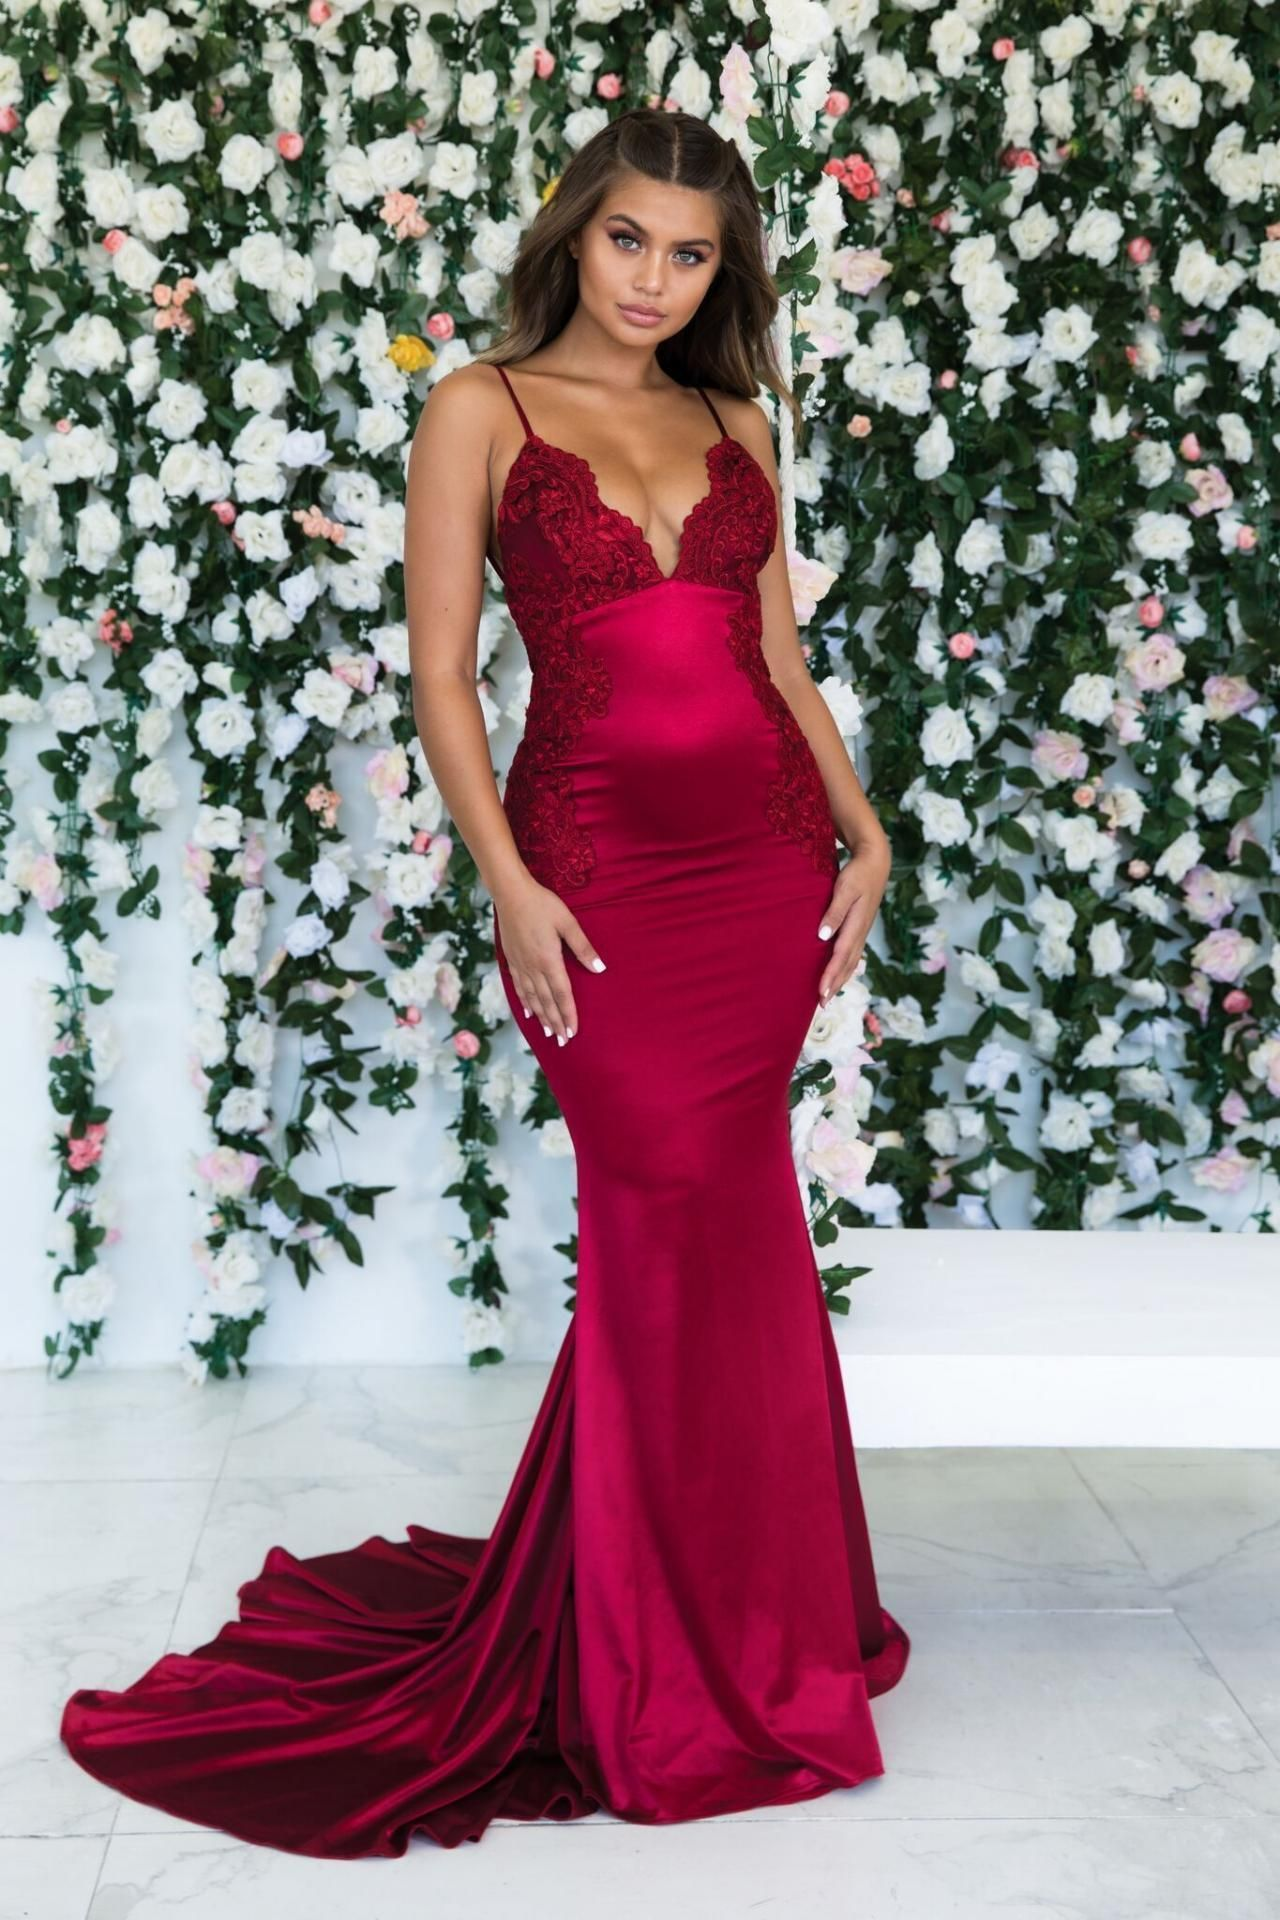 Gorgeous spaghetti straps red prom dress backless evening gown in